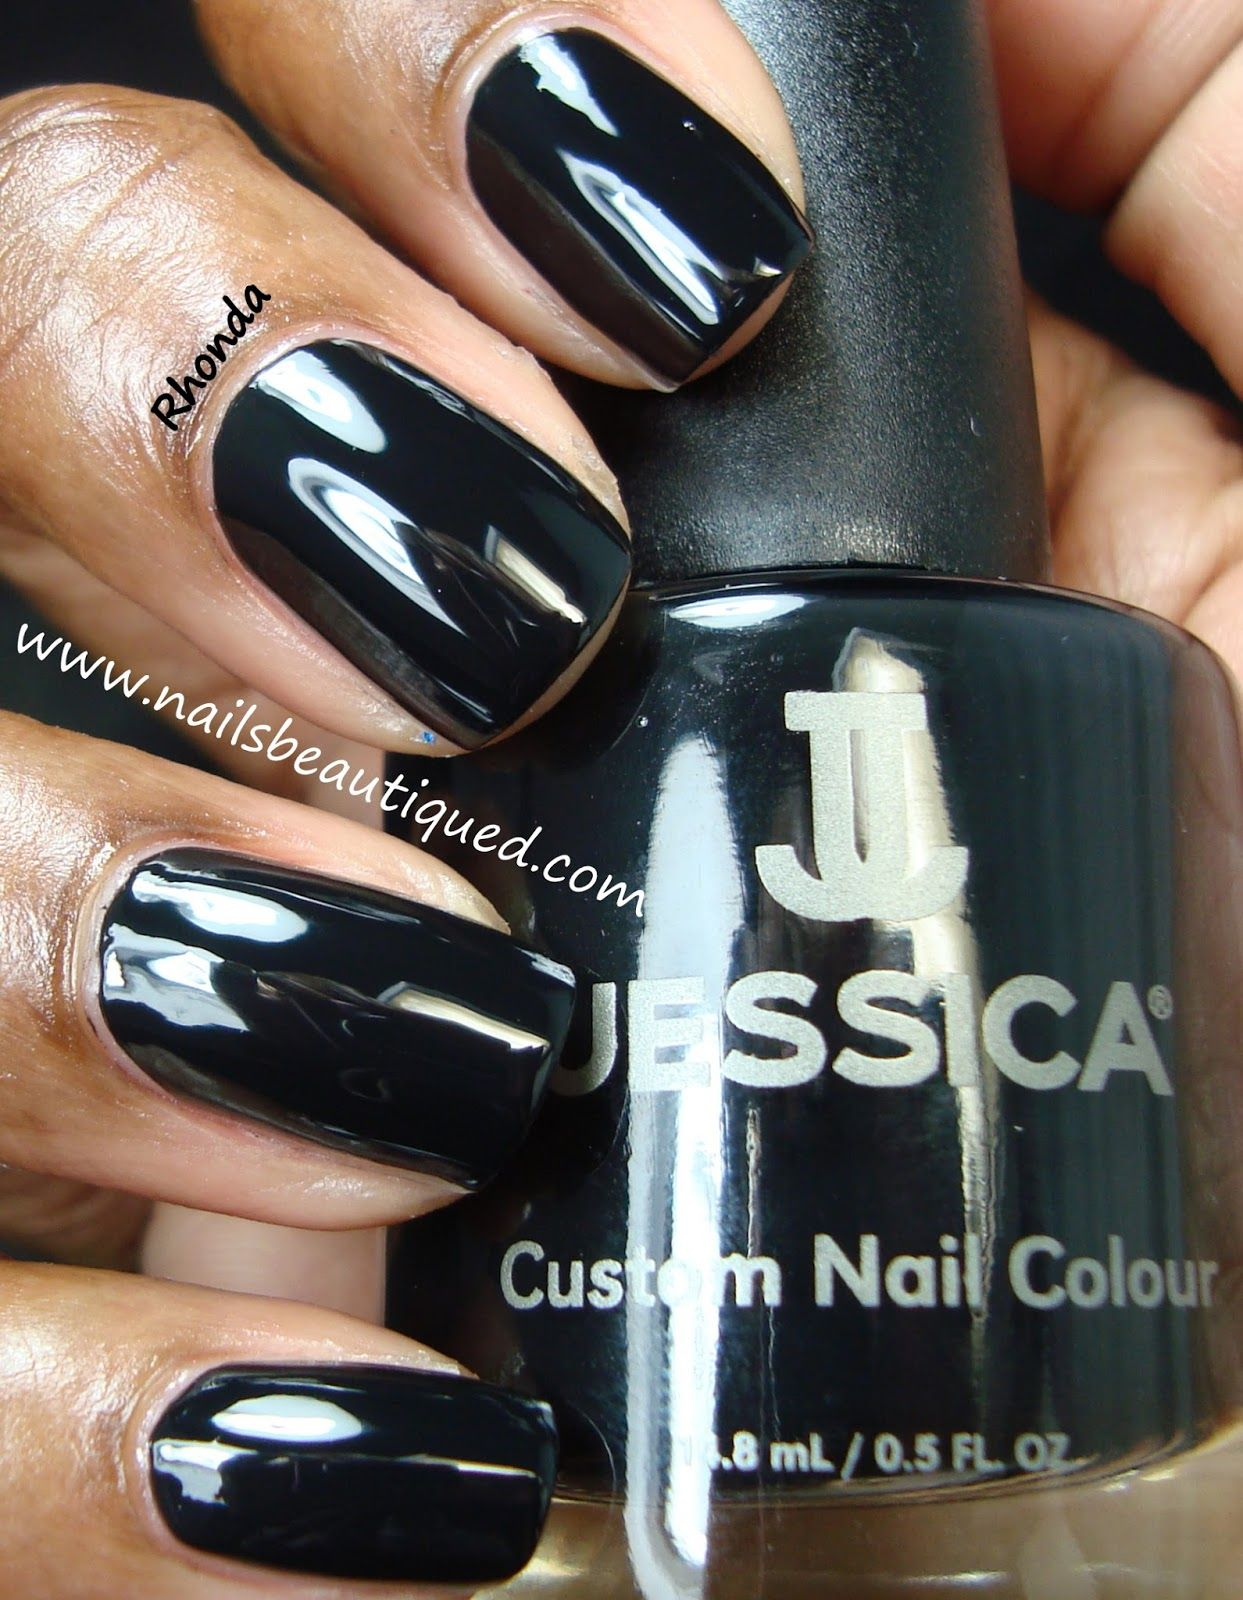 Jessica Fall 2013 A Night At the Opera Collection, Velvet & Pearls | Nails Beautiqued